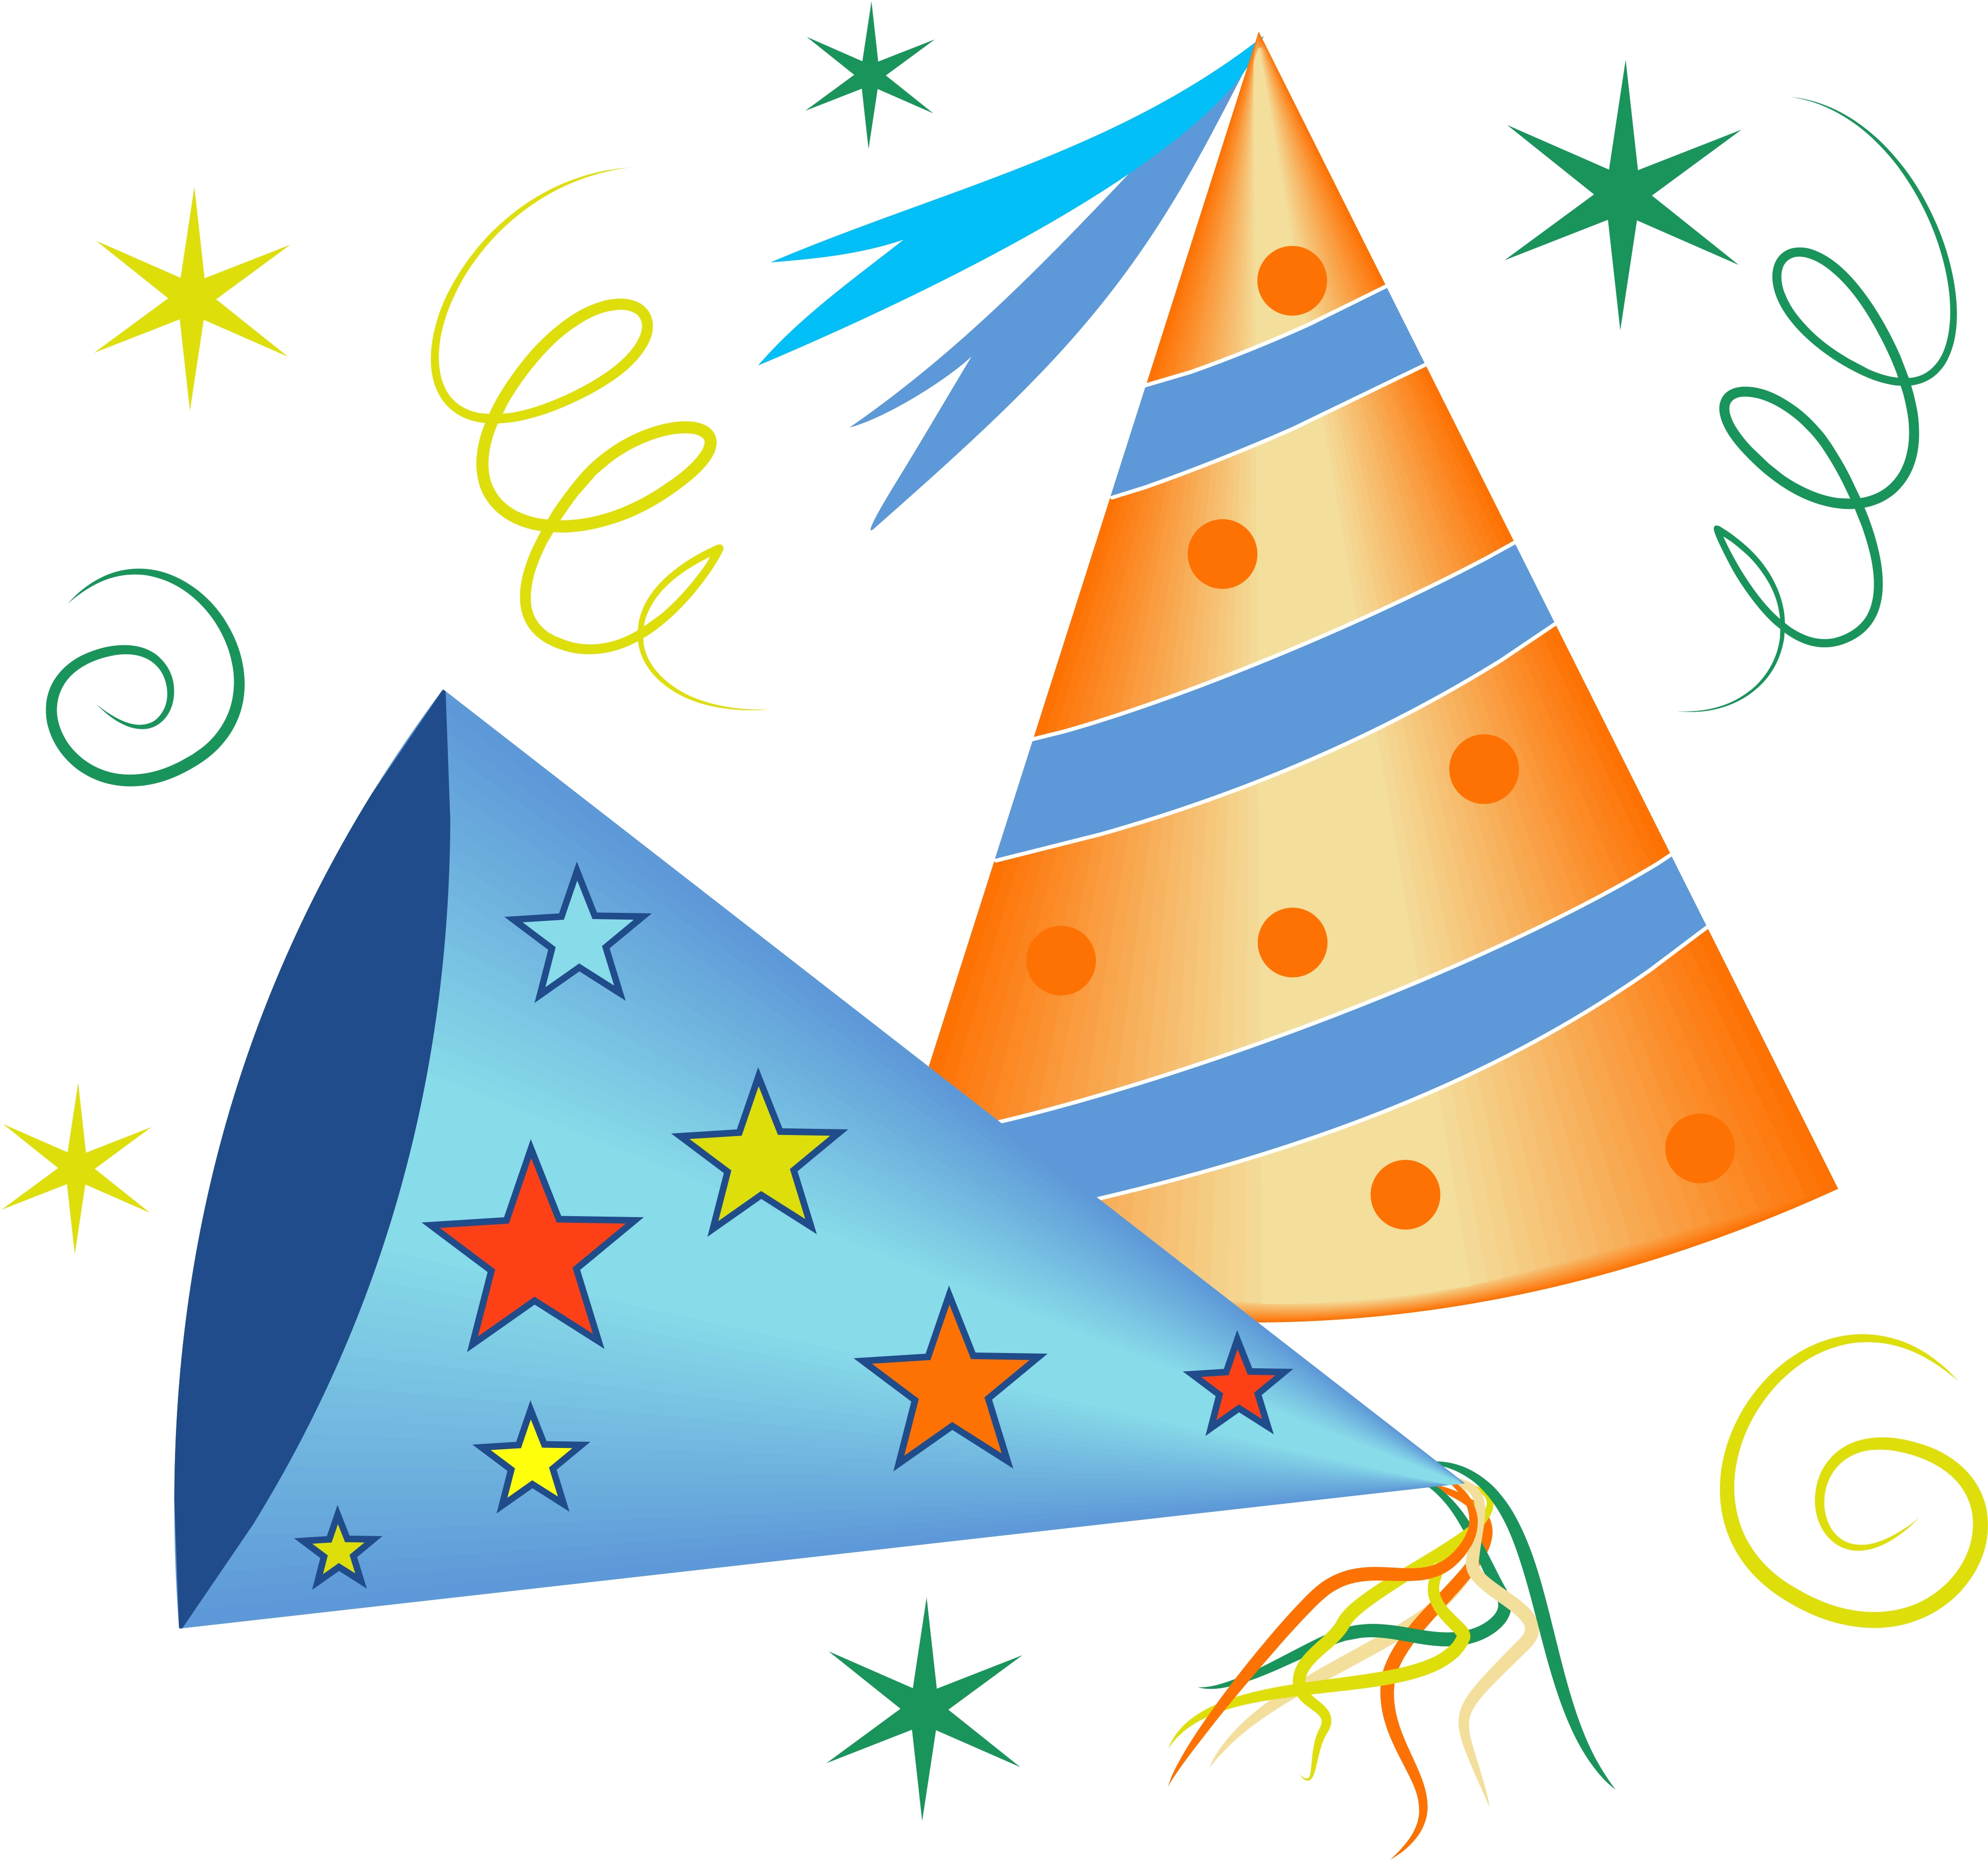 Party hat free download. Celebrate clipart transparent background